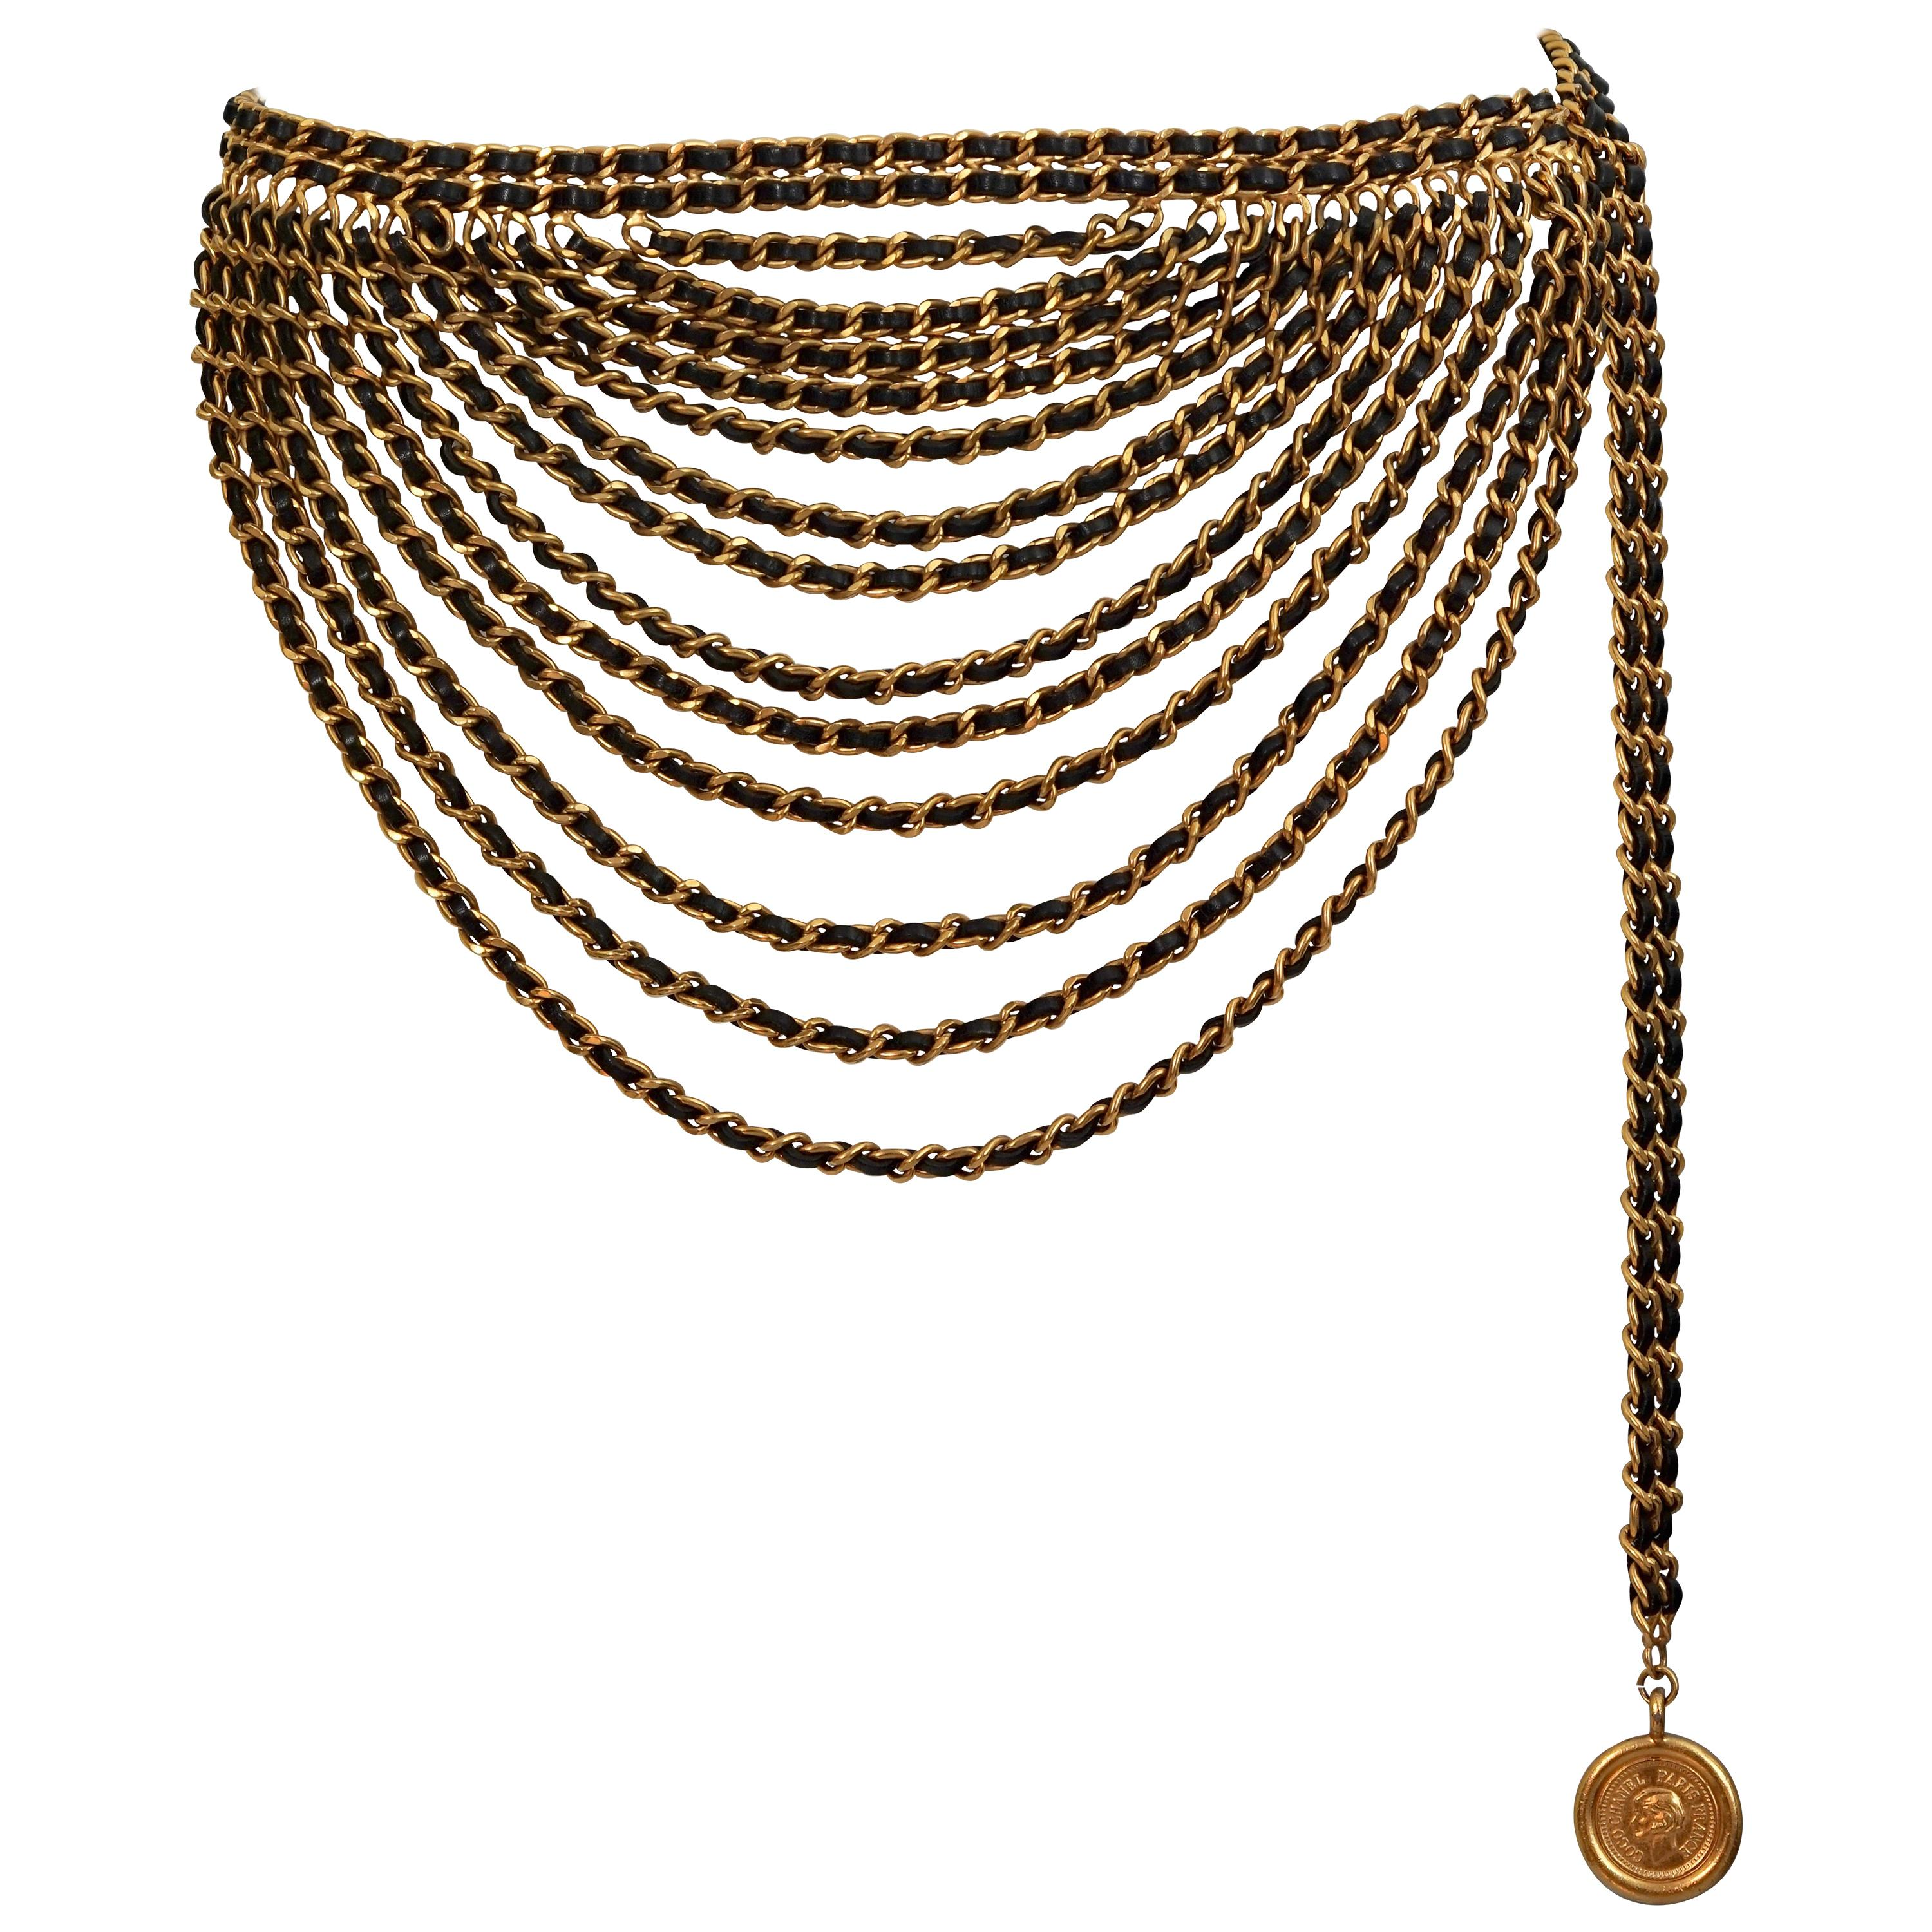 Vintage 1993 CHANEL Classic 15 Chain Leather Tiered Medallion Belt